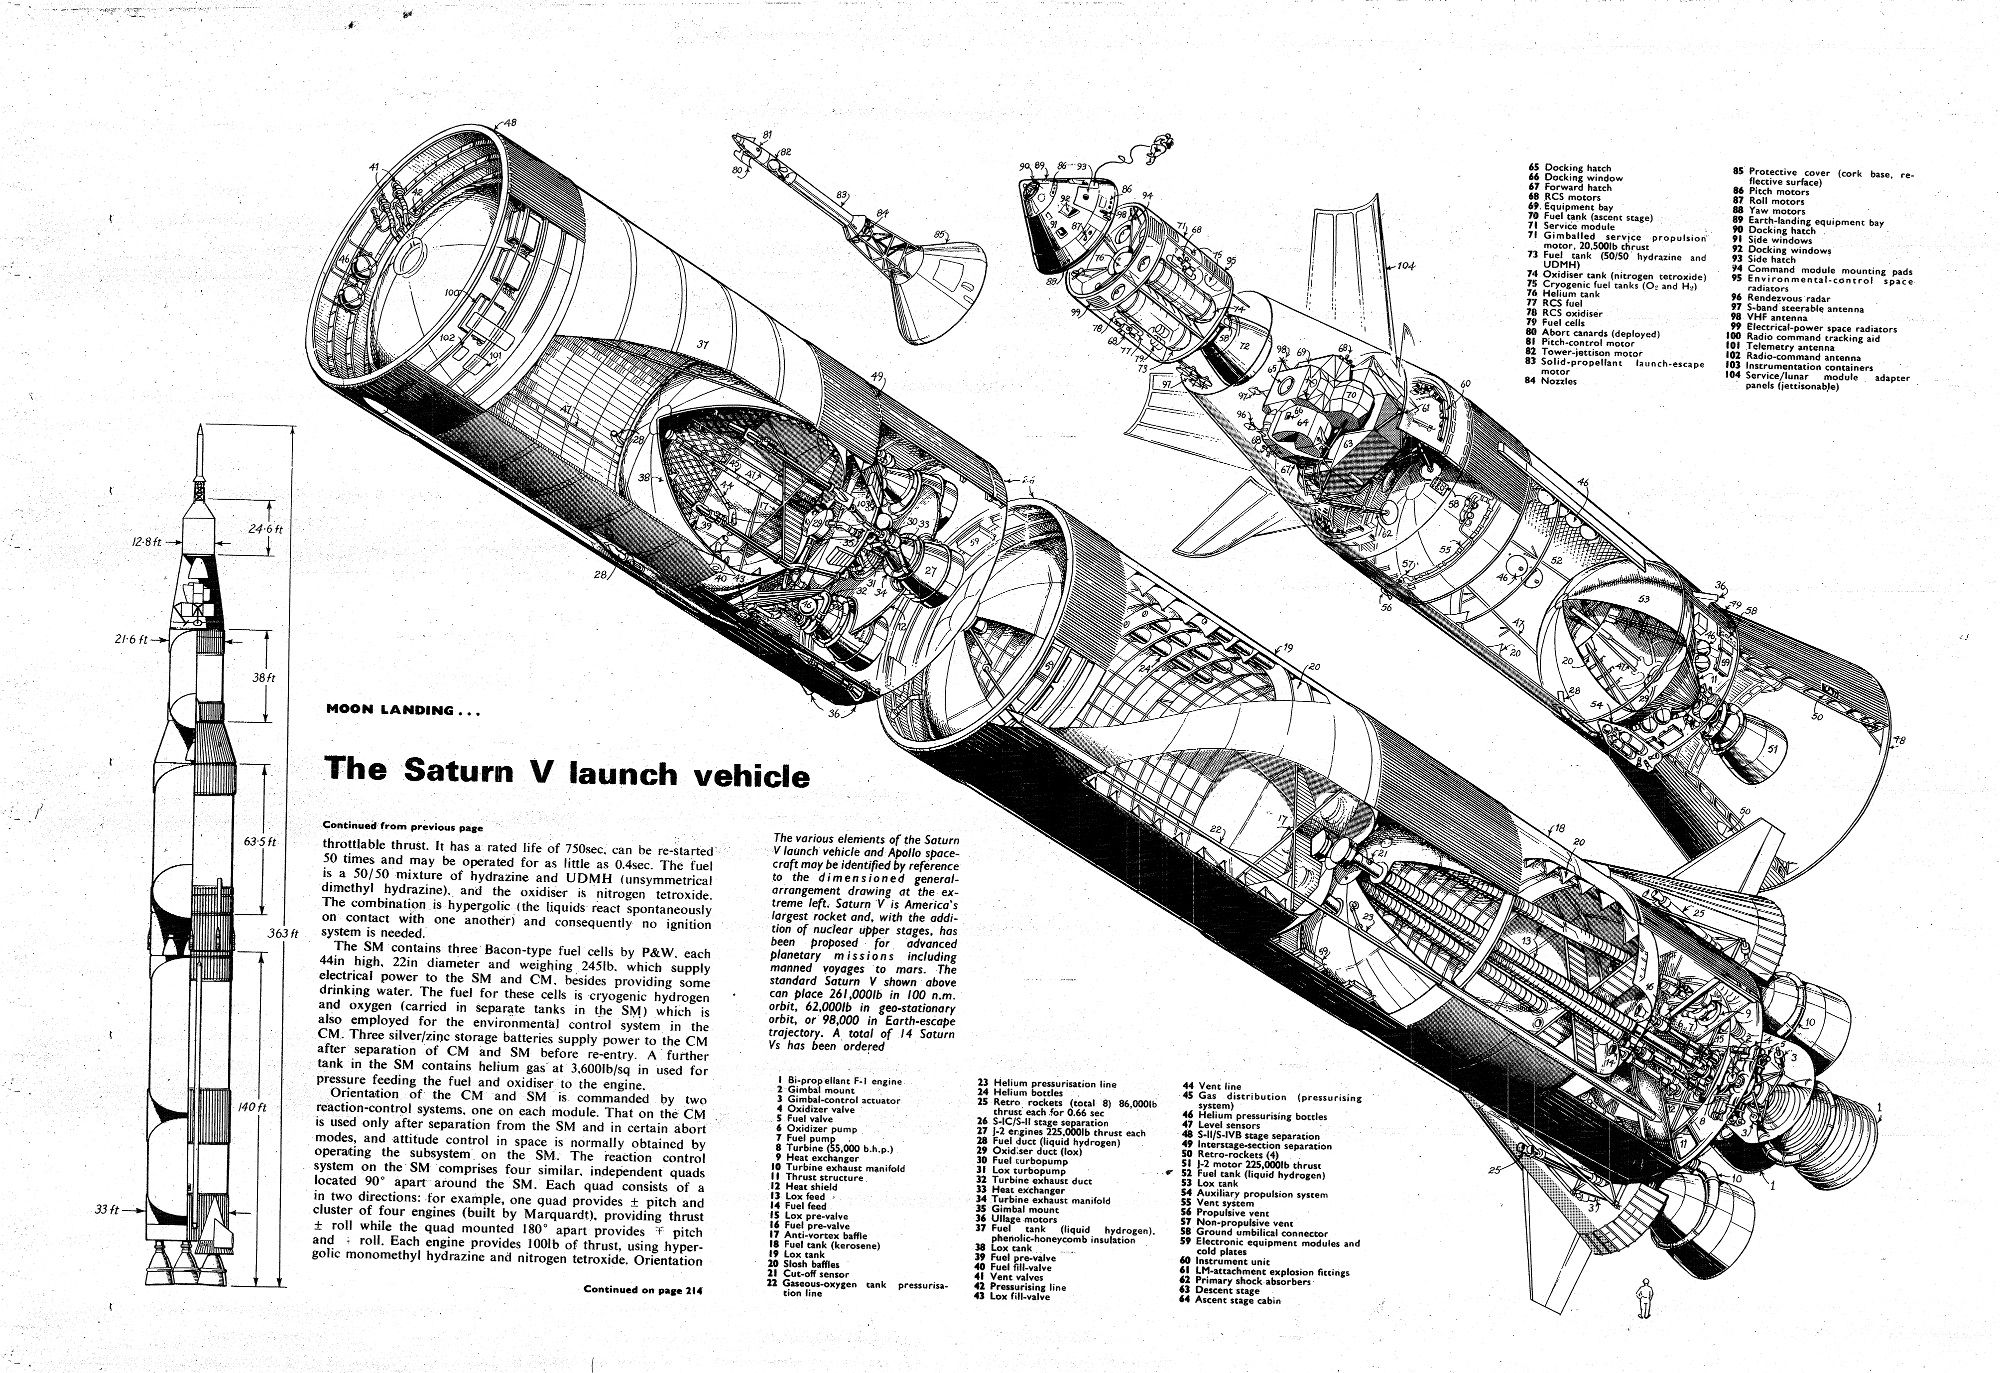 saturn v launch vehicle cutaway